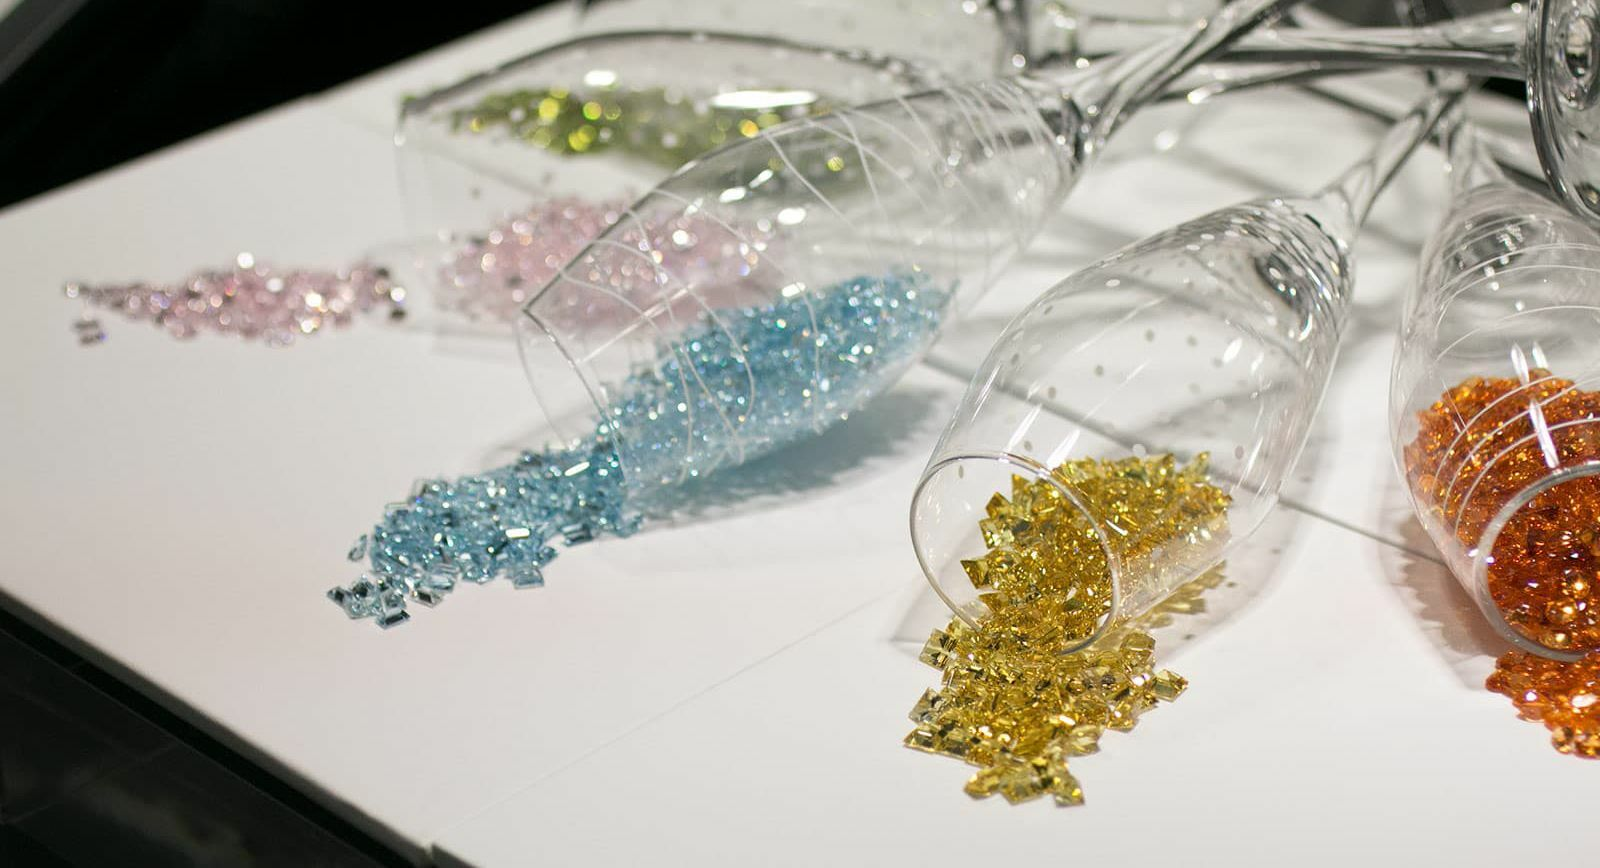 Gemstones at Inhorgenta 2020 exhibition in Munich